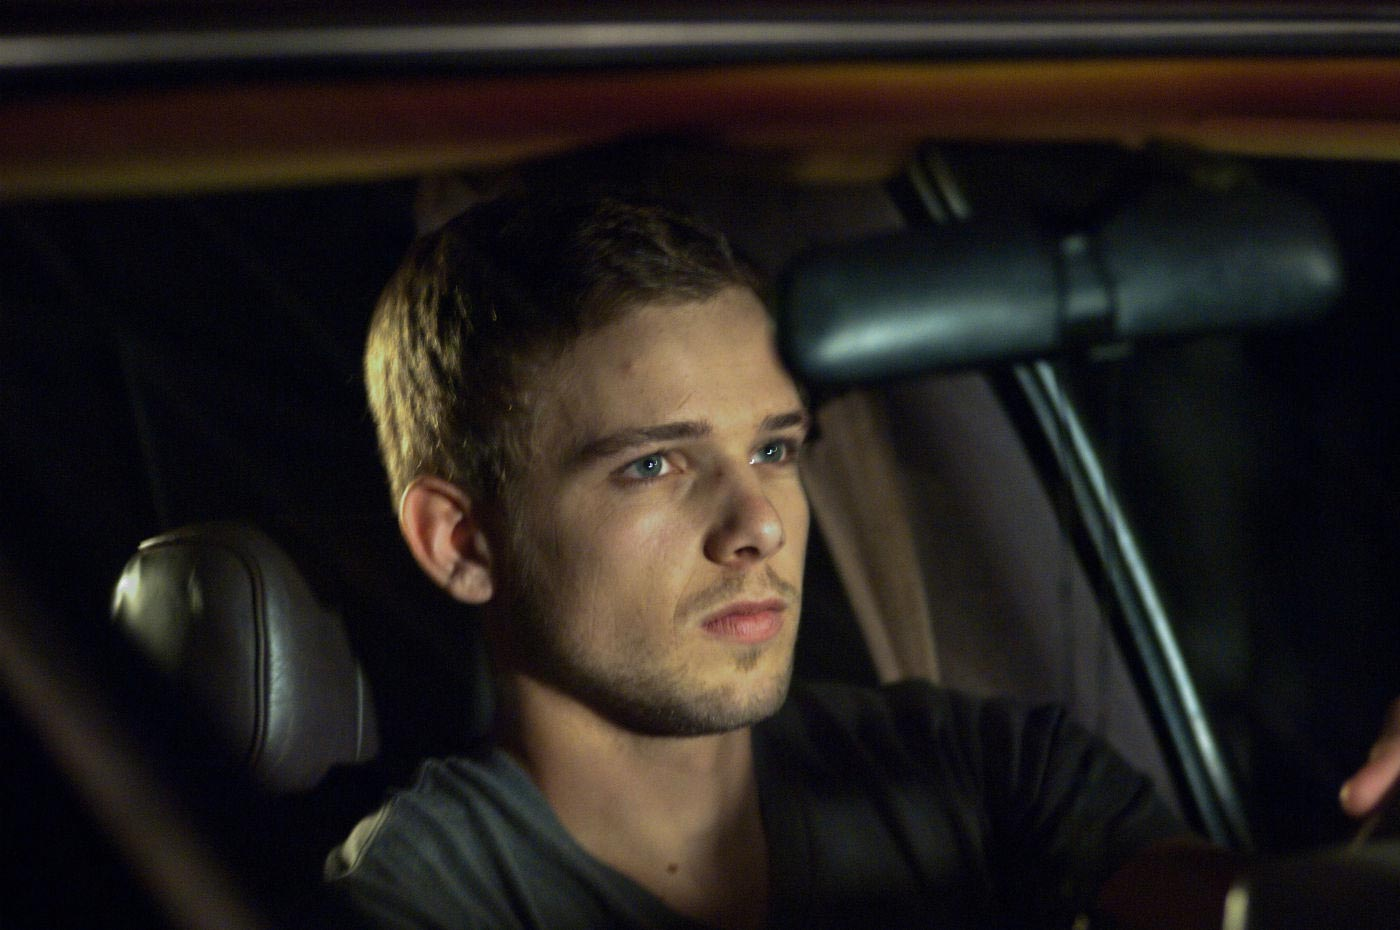 max-thieriot-in-house-at-the-end-of-the-street